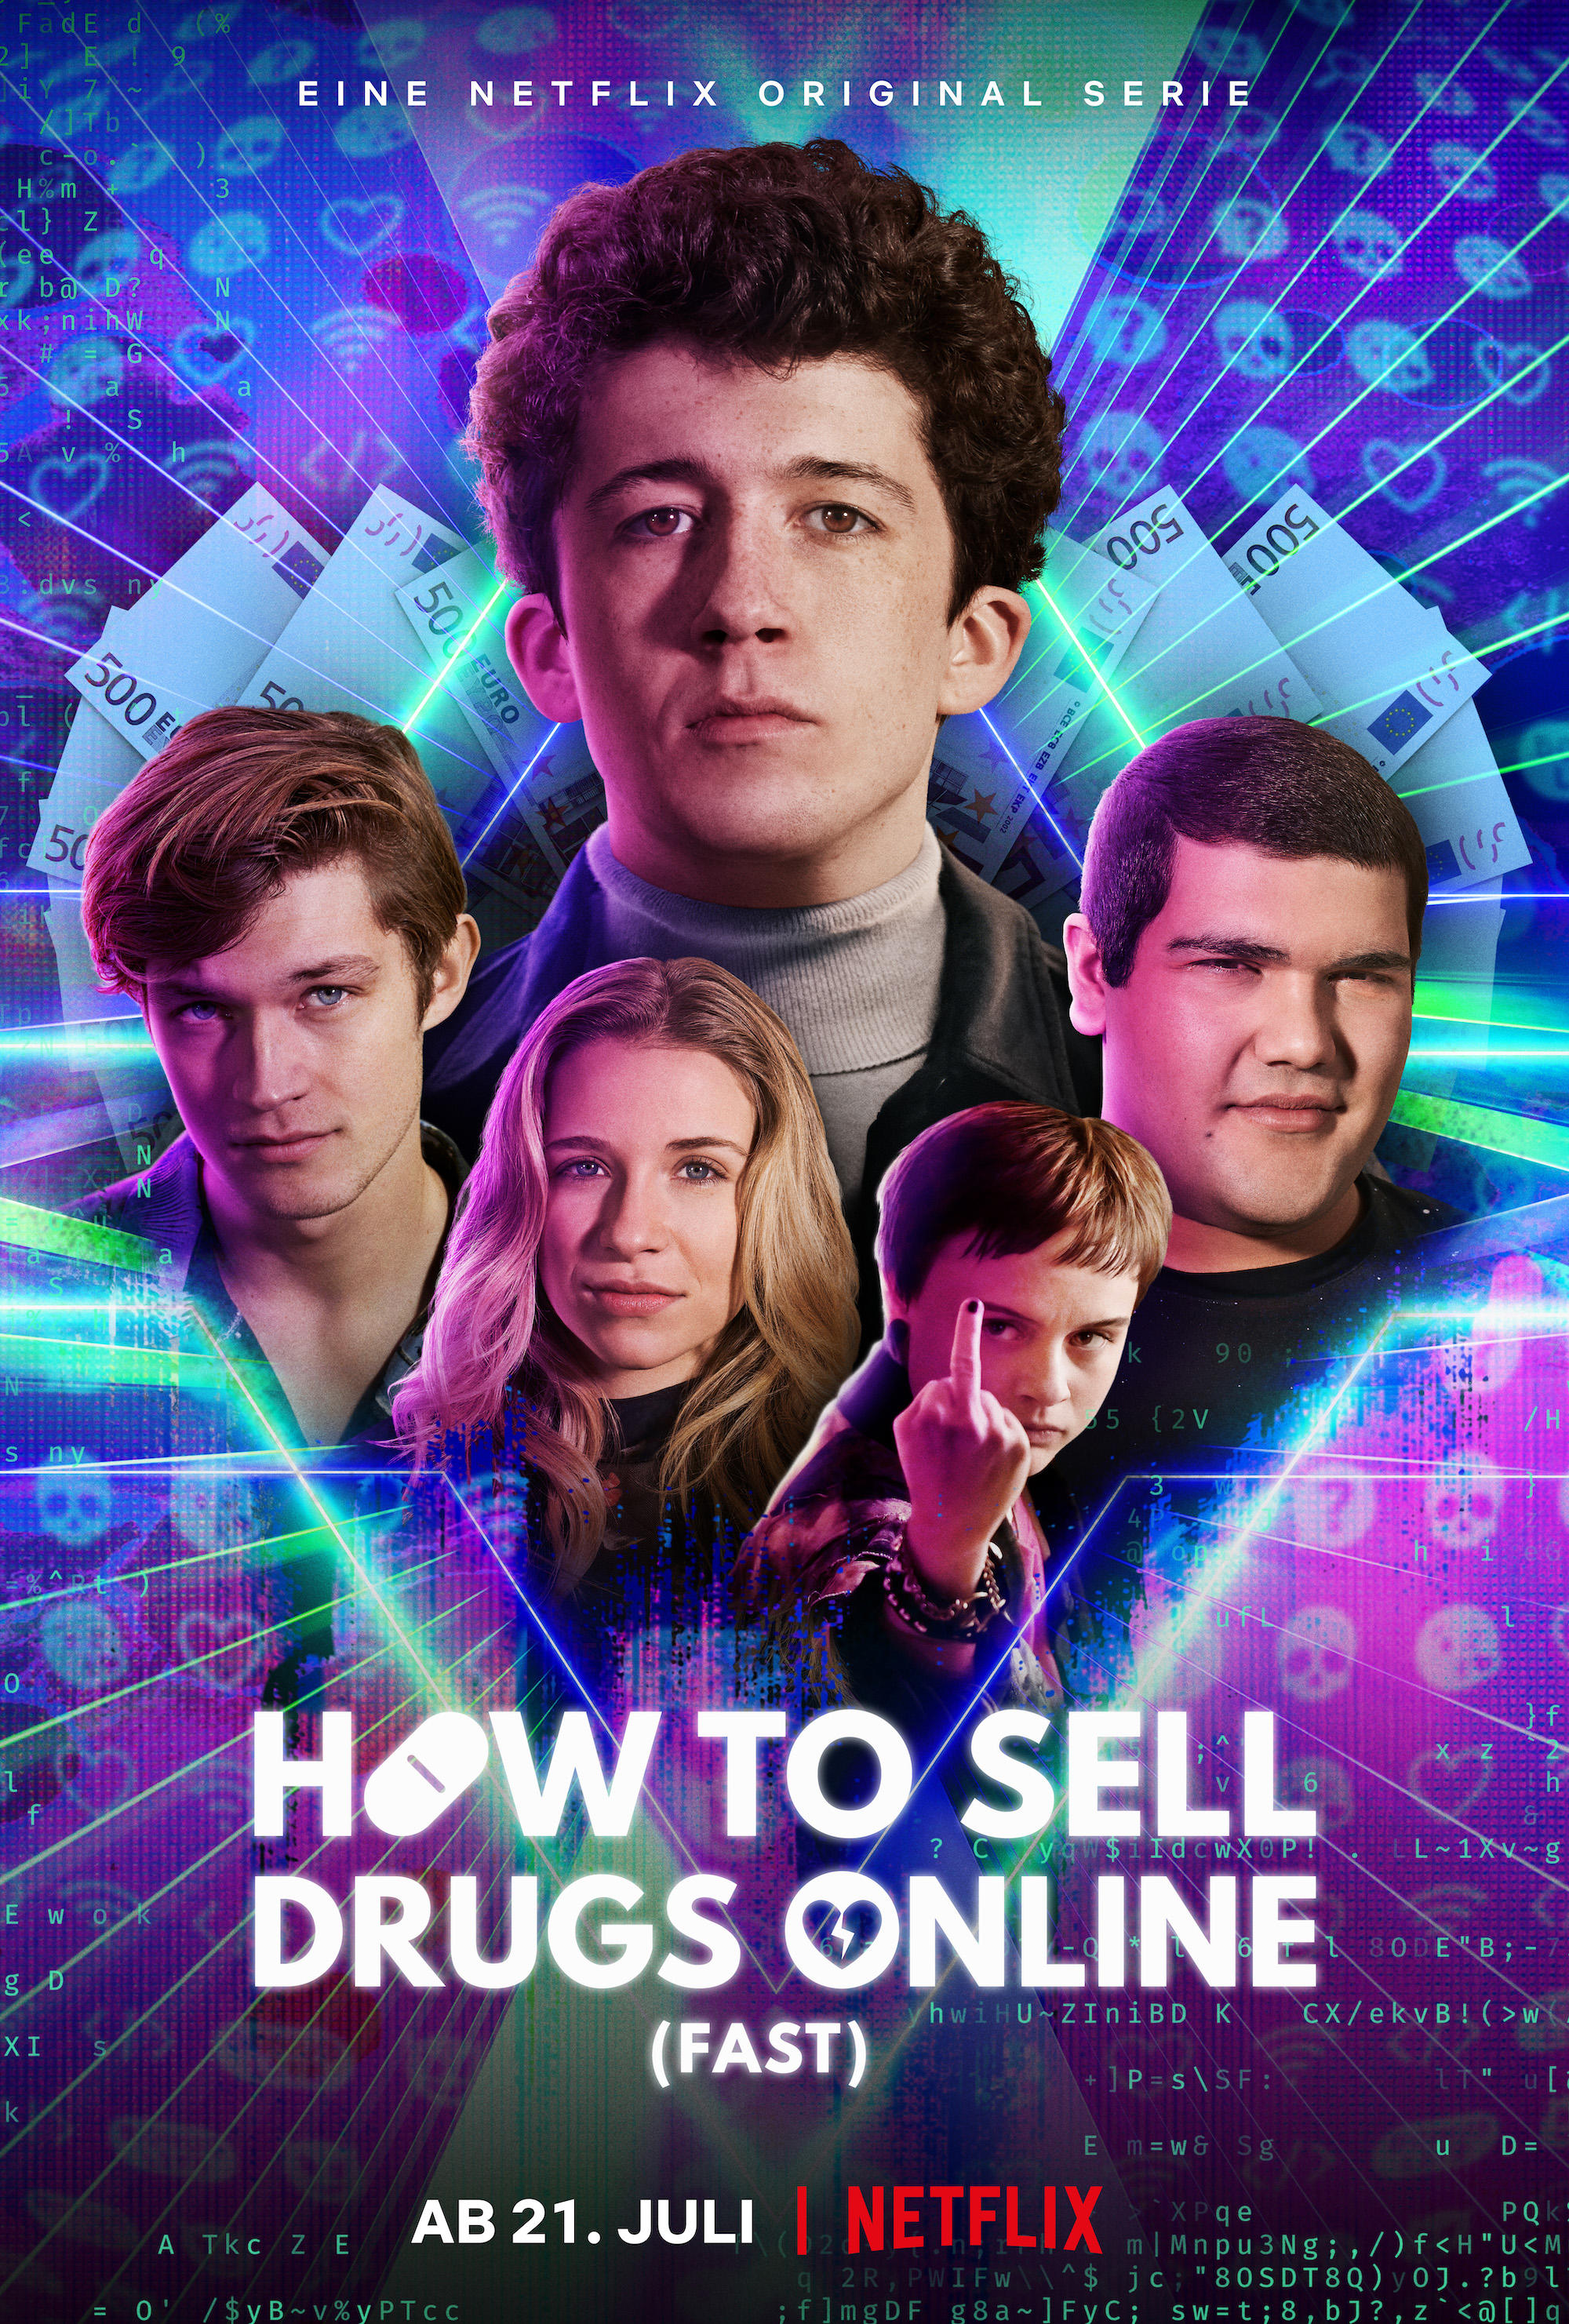 How to Sell Drugs Online (Fast) | Netflix Wiki | Fandom